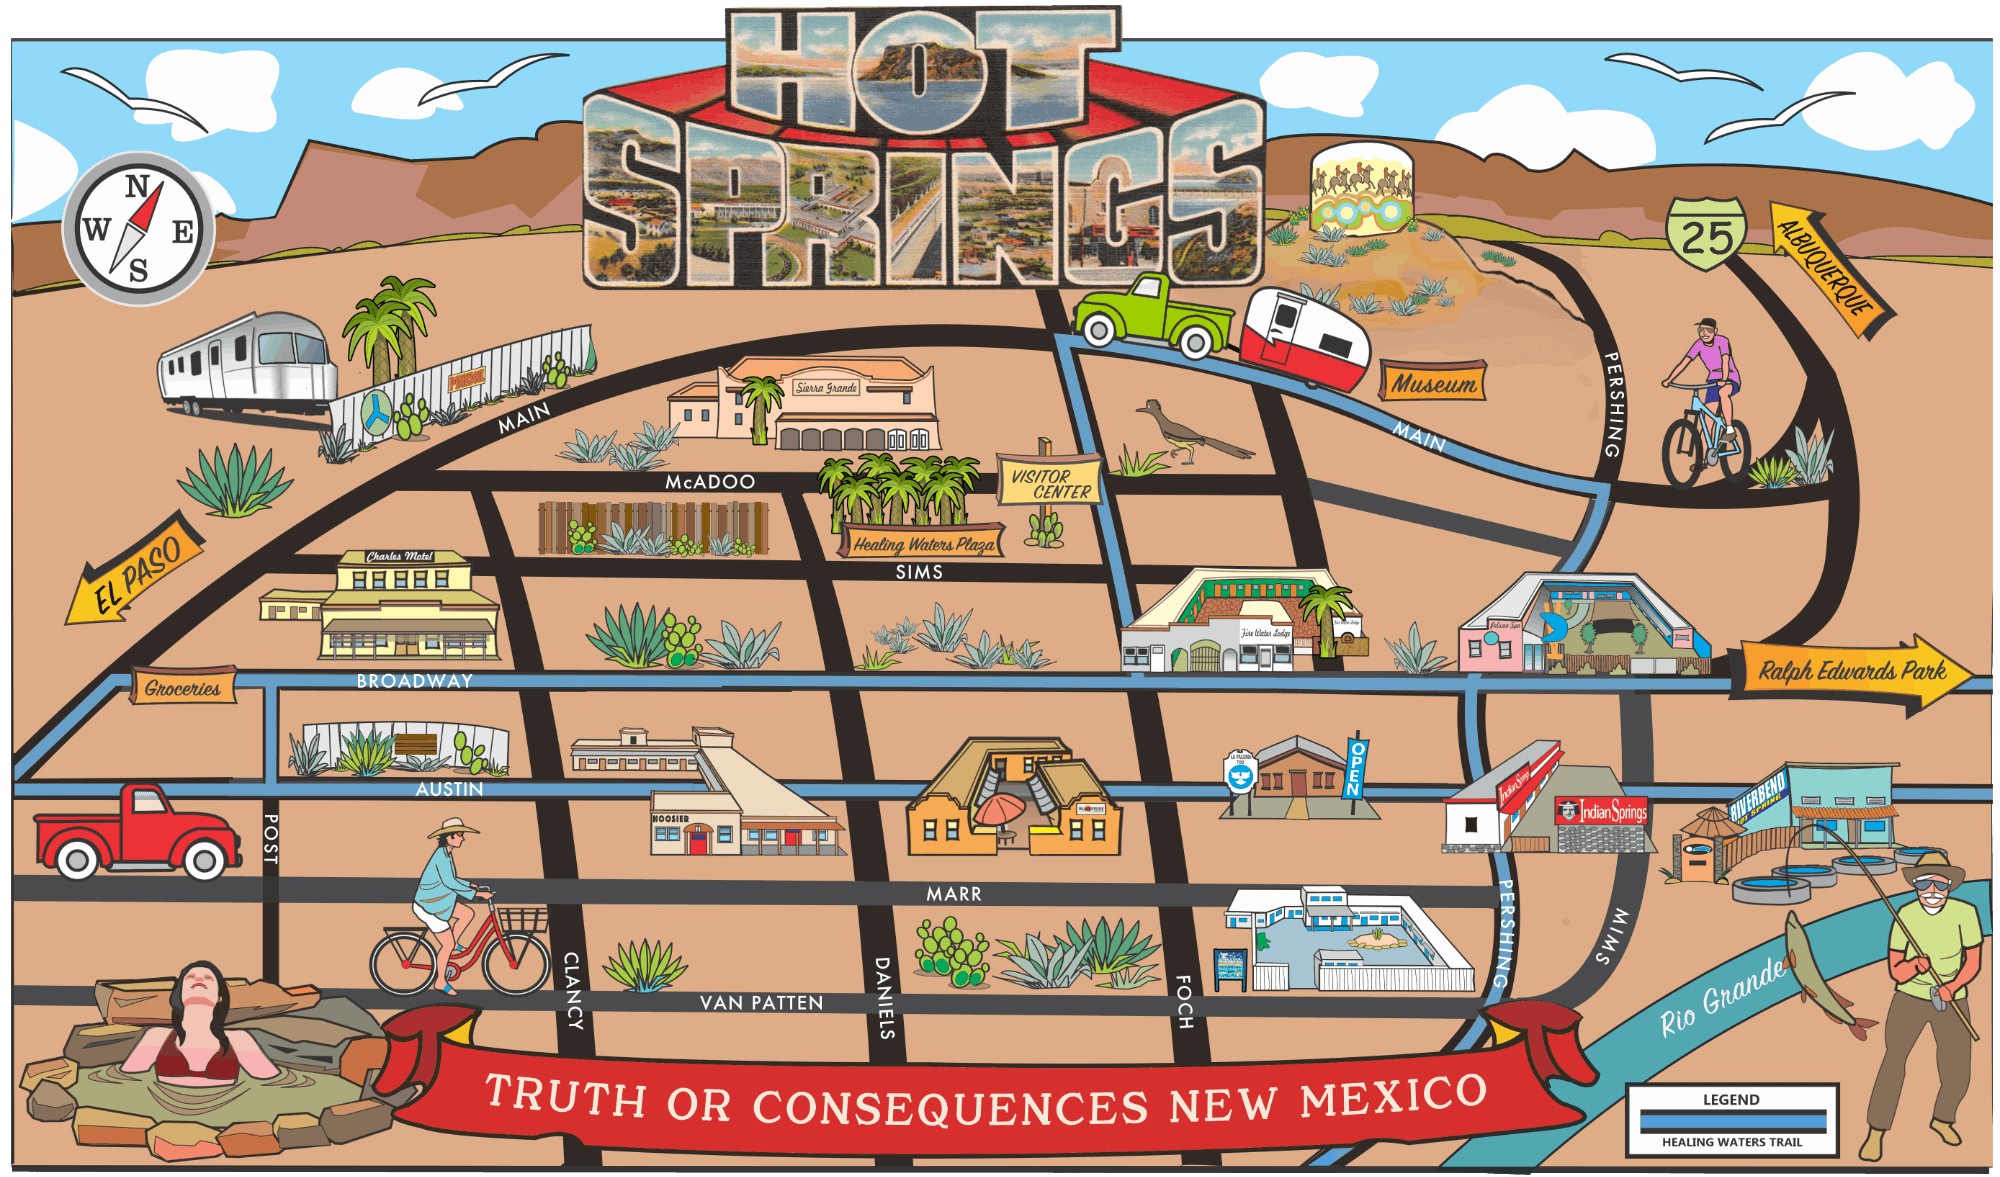 ten hot spring spas in Truth or Consequences New Mexico